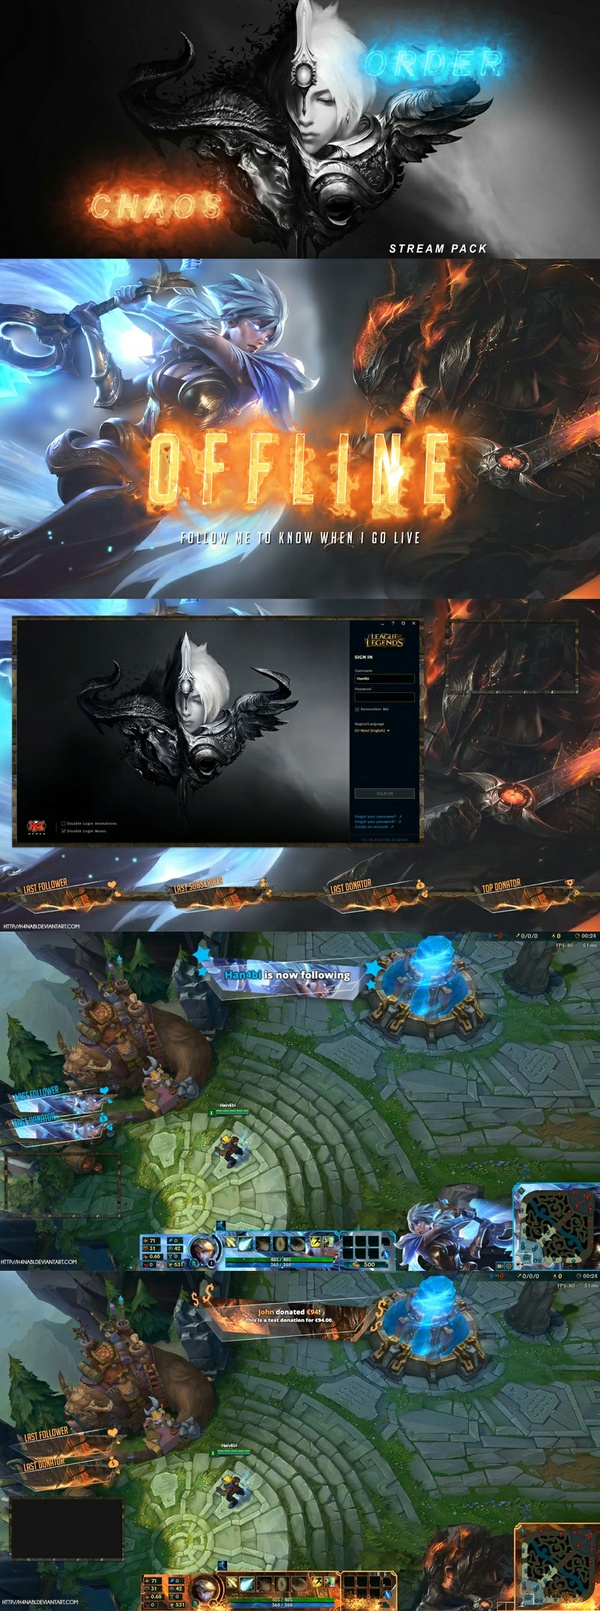 Chaos/Order - League of Legends PRO Stream Pack